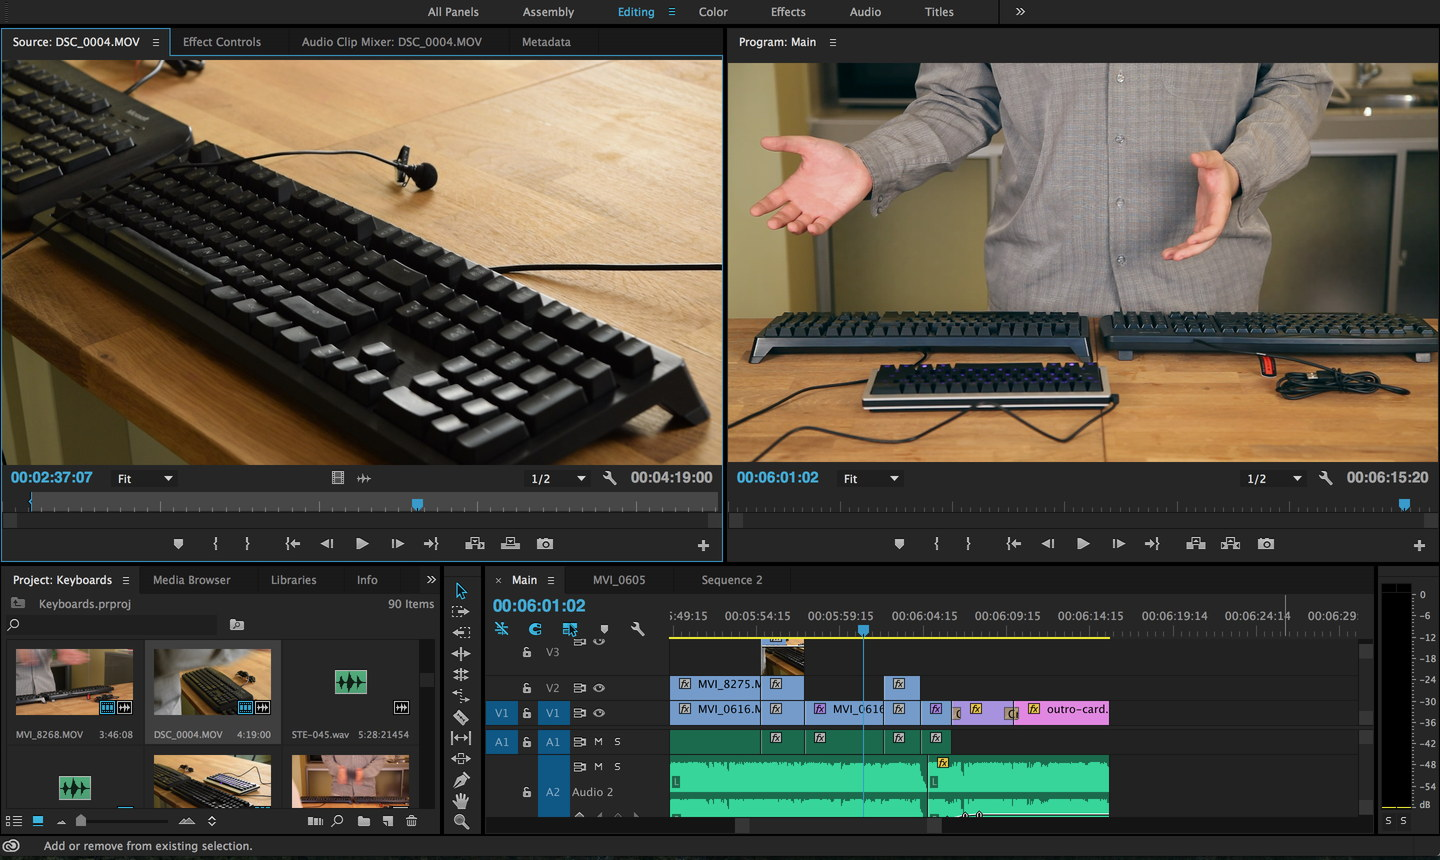 Building the Best PC for Video Editing